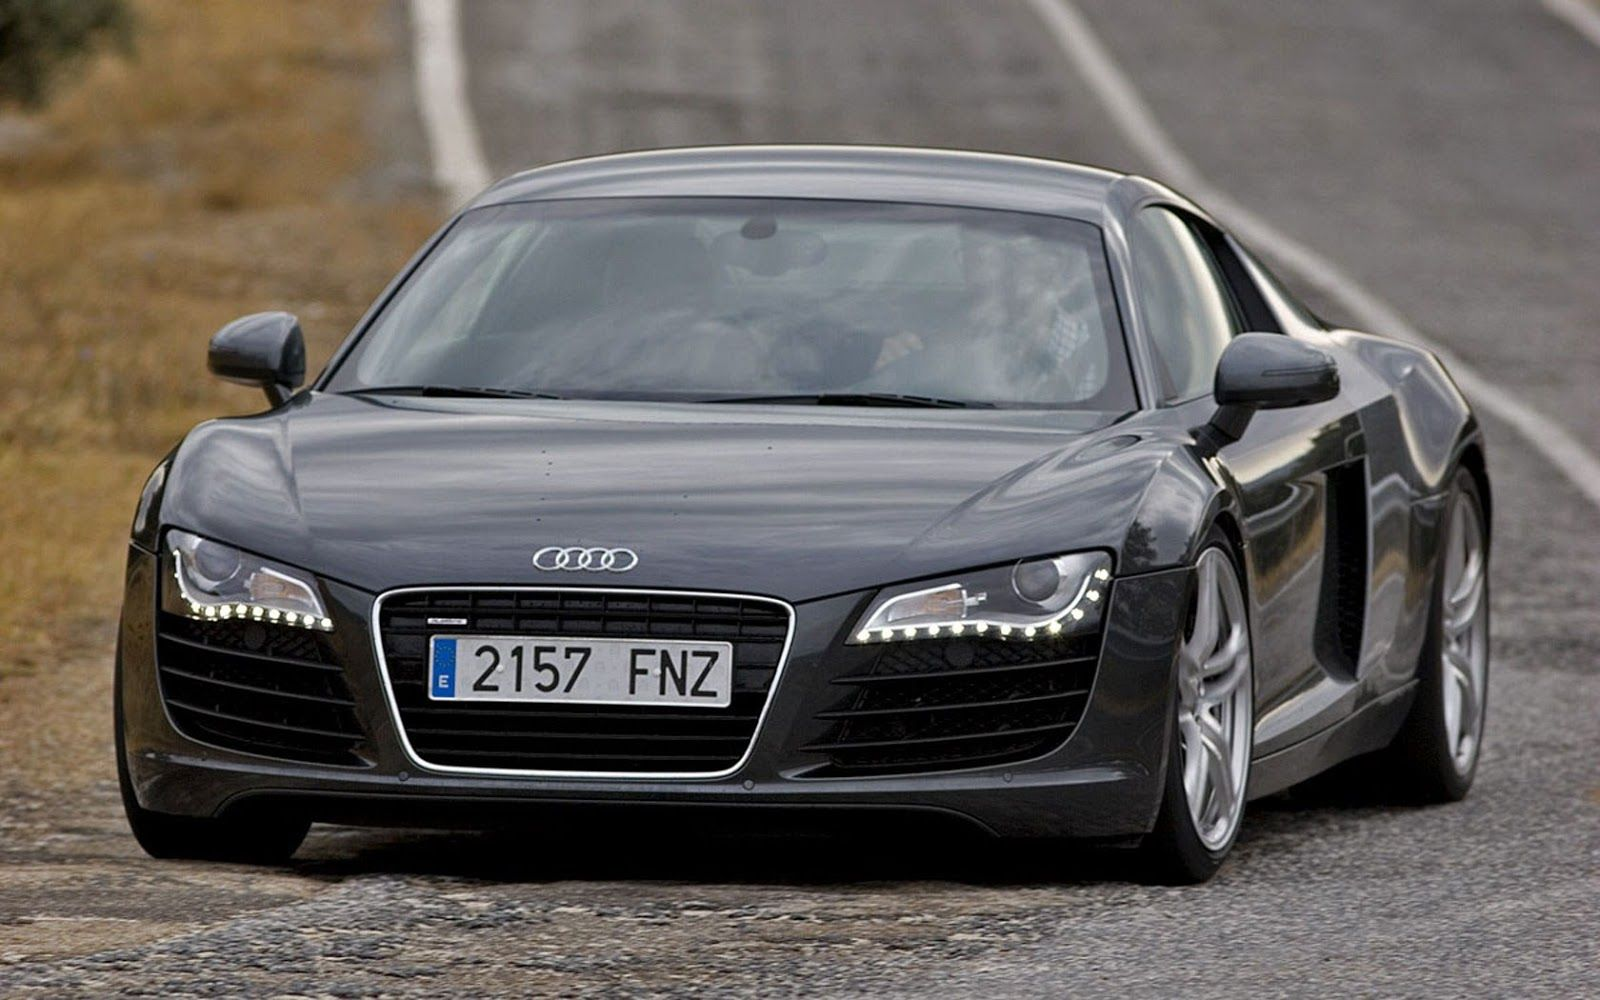 2016 Audi R8 Review And Cost world wide webtocarnewshq